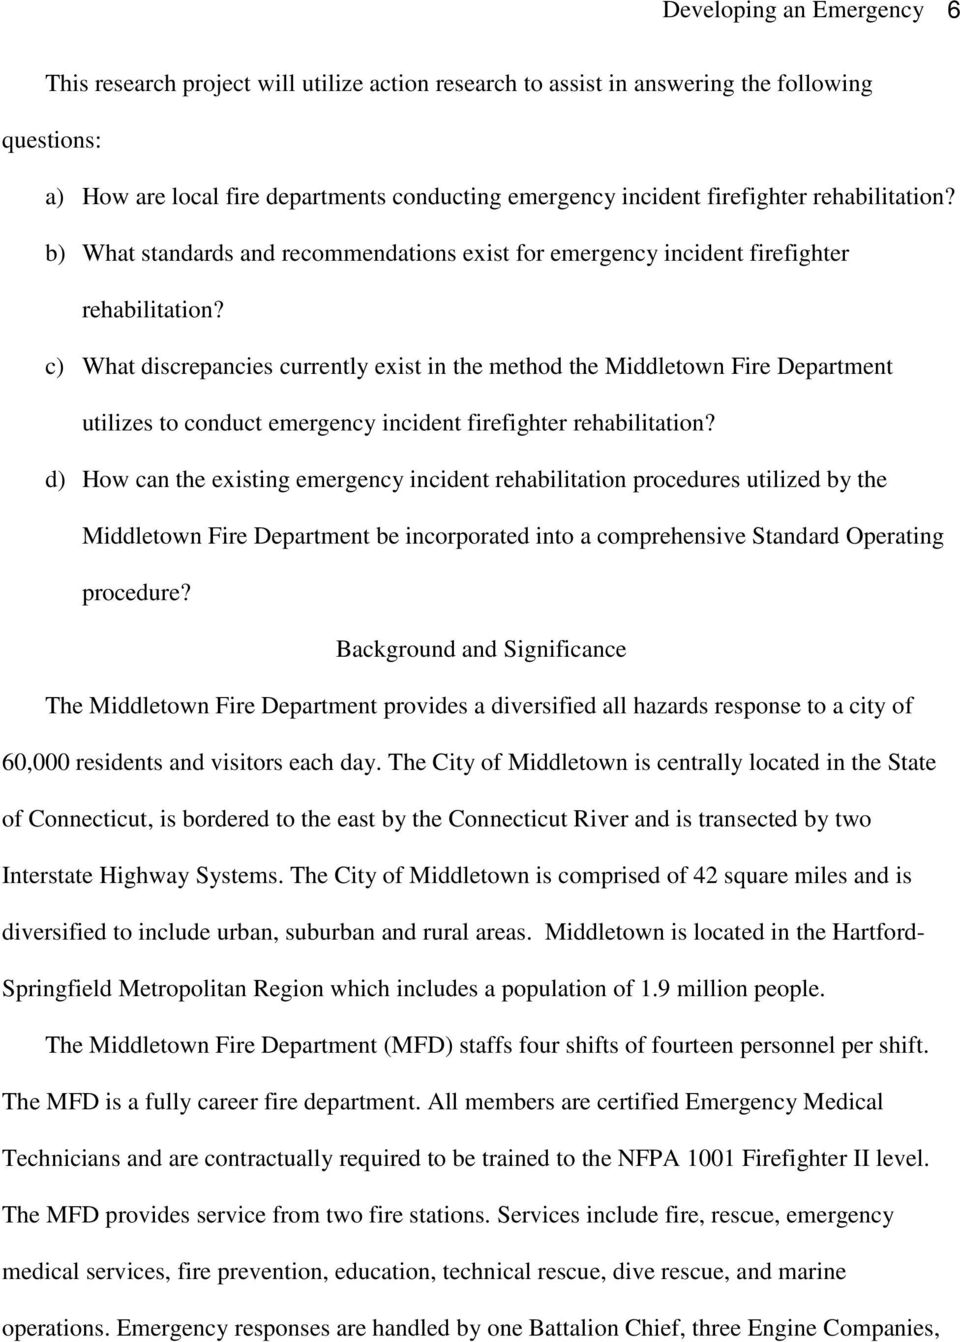 c) What discrepancies currently exist in the method the Middletown Fire Department utilizes to conduct emergency incident firefighter rehabilitation?